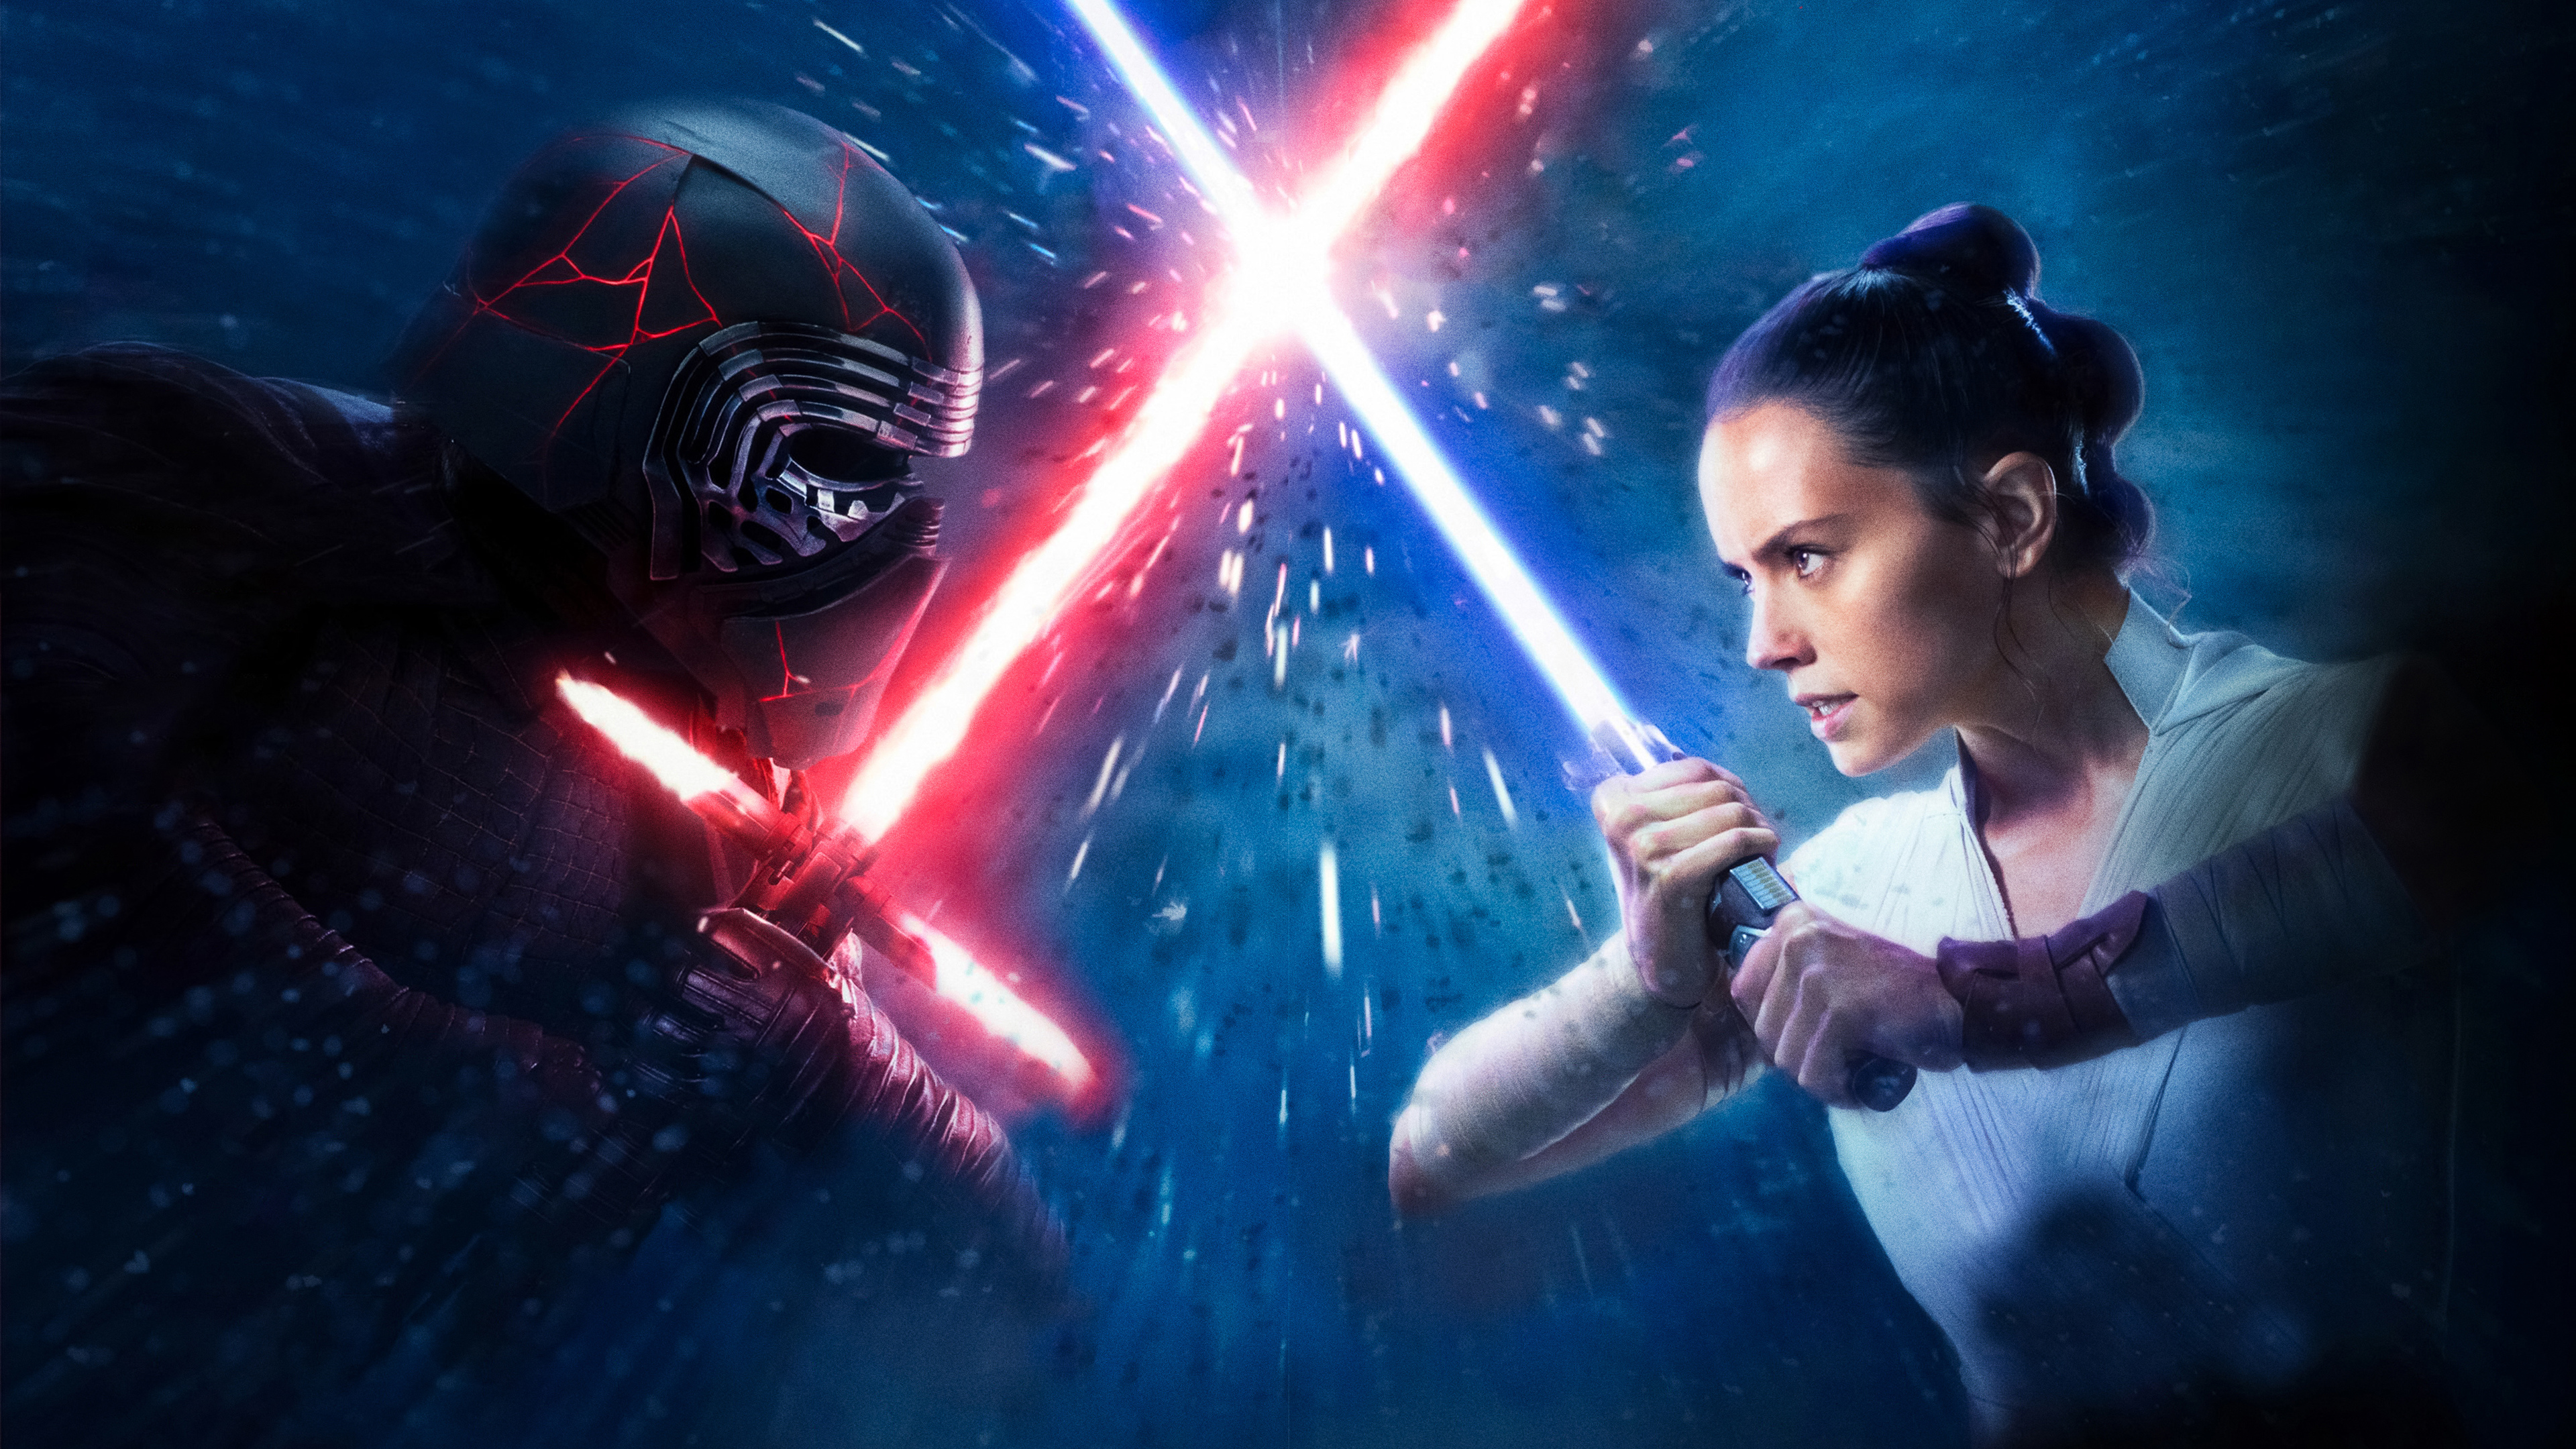 star wars the rise of skywalker 1570919683 - Star Wars The Rise Of Skywalker - star wars wallpapers, star wars the rise of skywalker wallpapers, rey wallpapers, movies wallpapers, hd-wallpapers, 4k-wallpapers, 2019 movies wallpapers